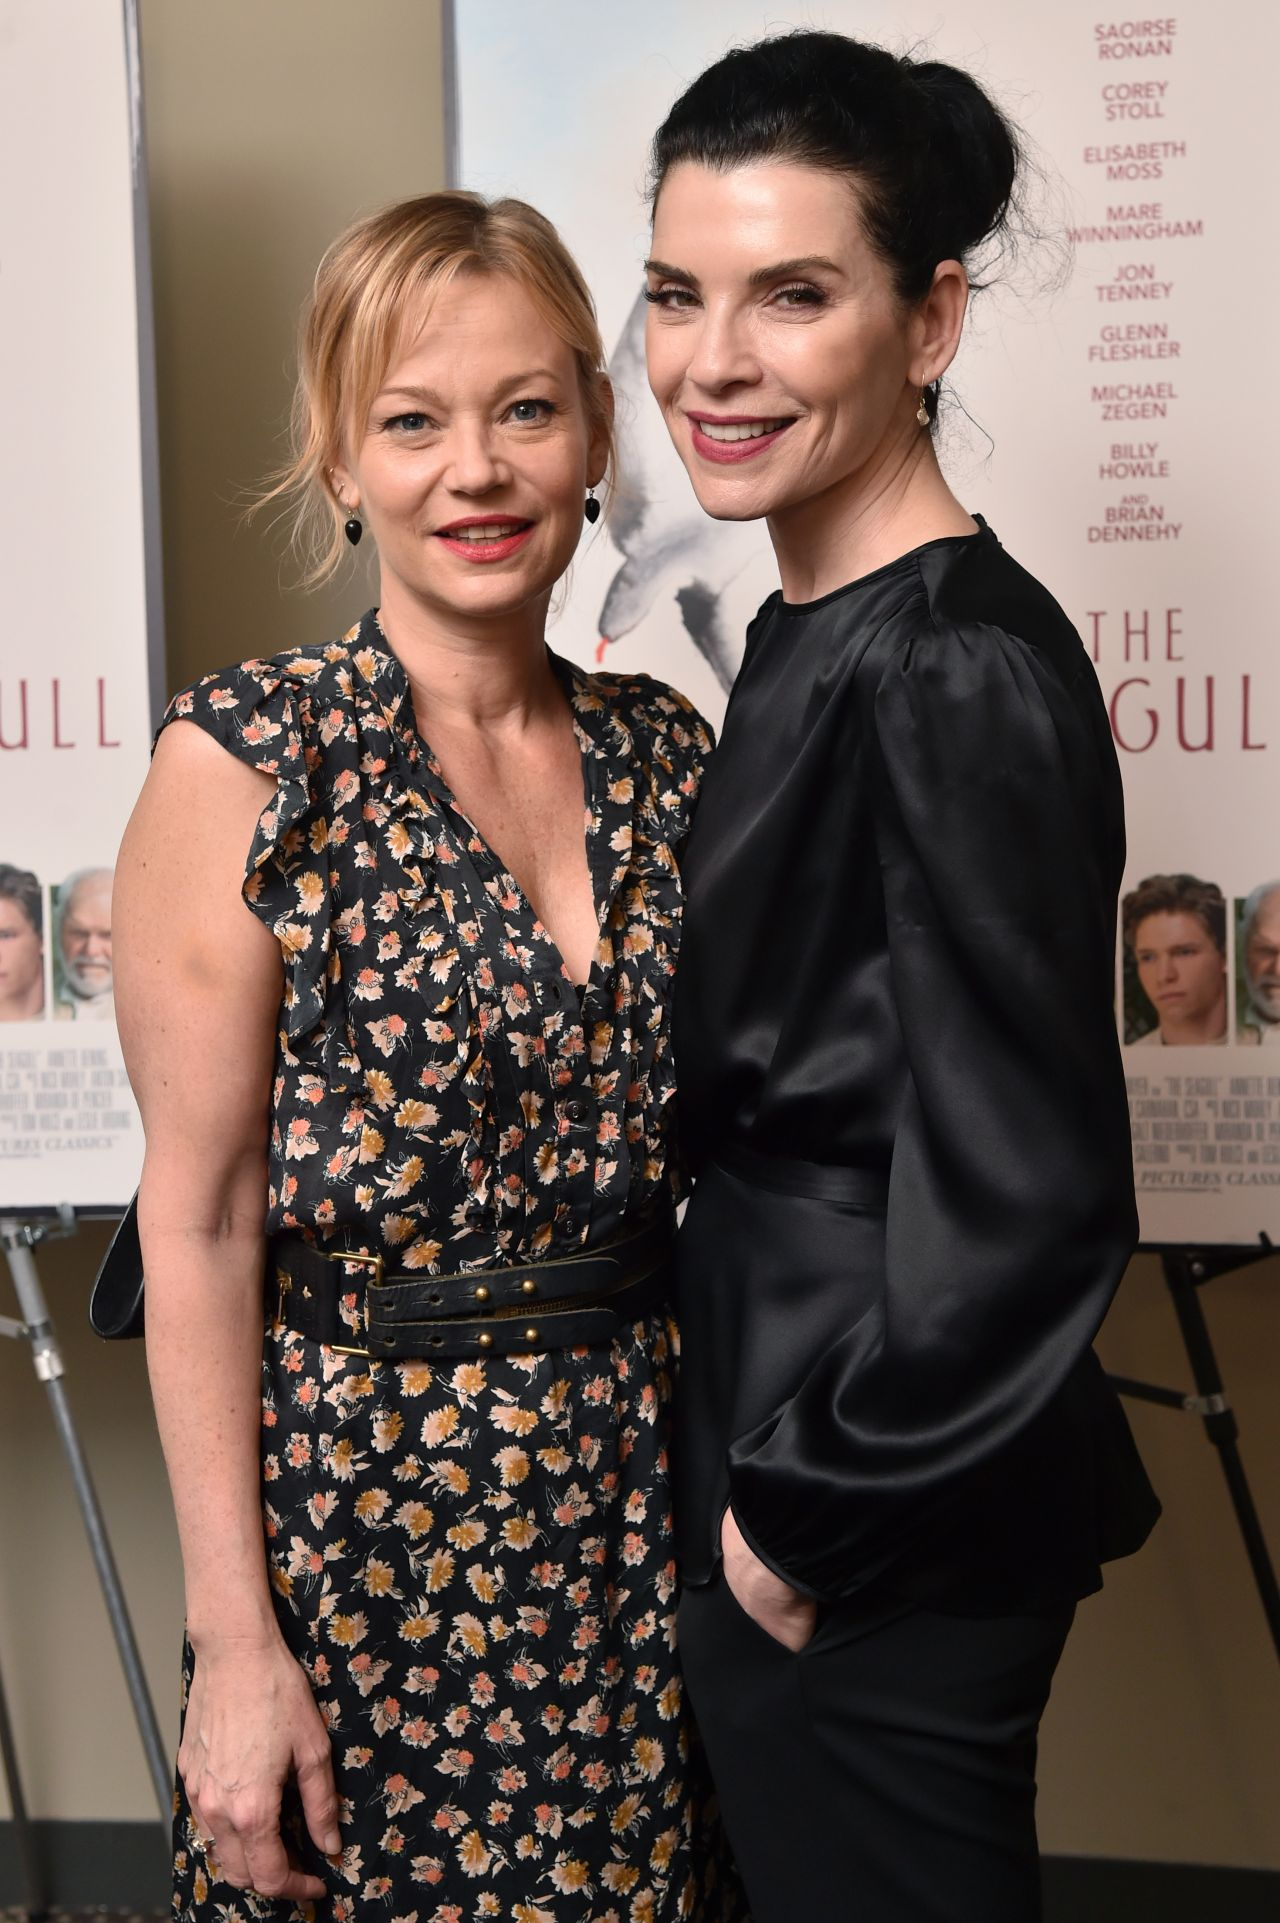 http://celebmafia.com/wp-content/uploads/2018/05/samantha-mathis-and-julianna-marguiles-the-seagull-premiere-in-new-york-05-10-2018-2.jpg